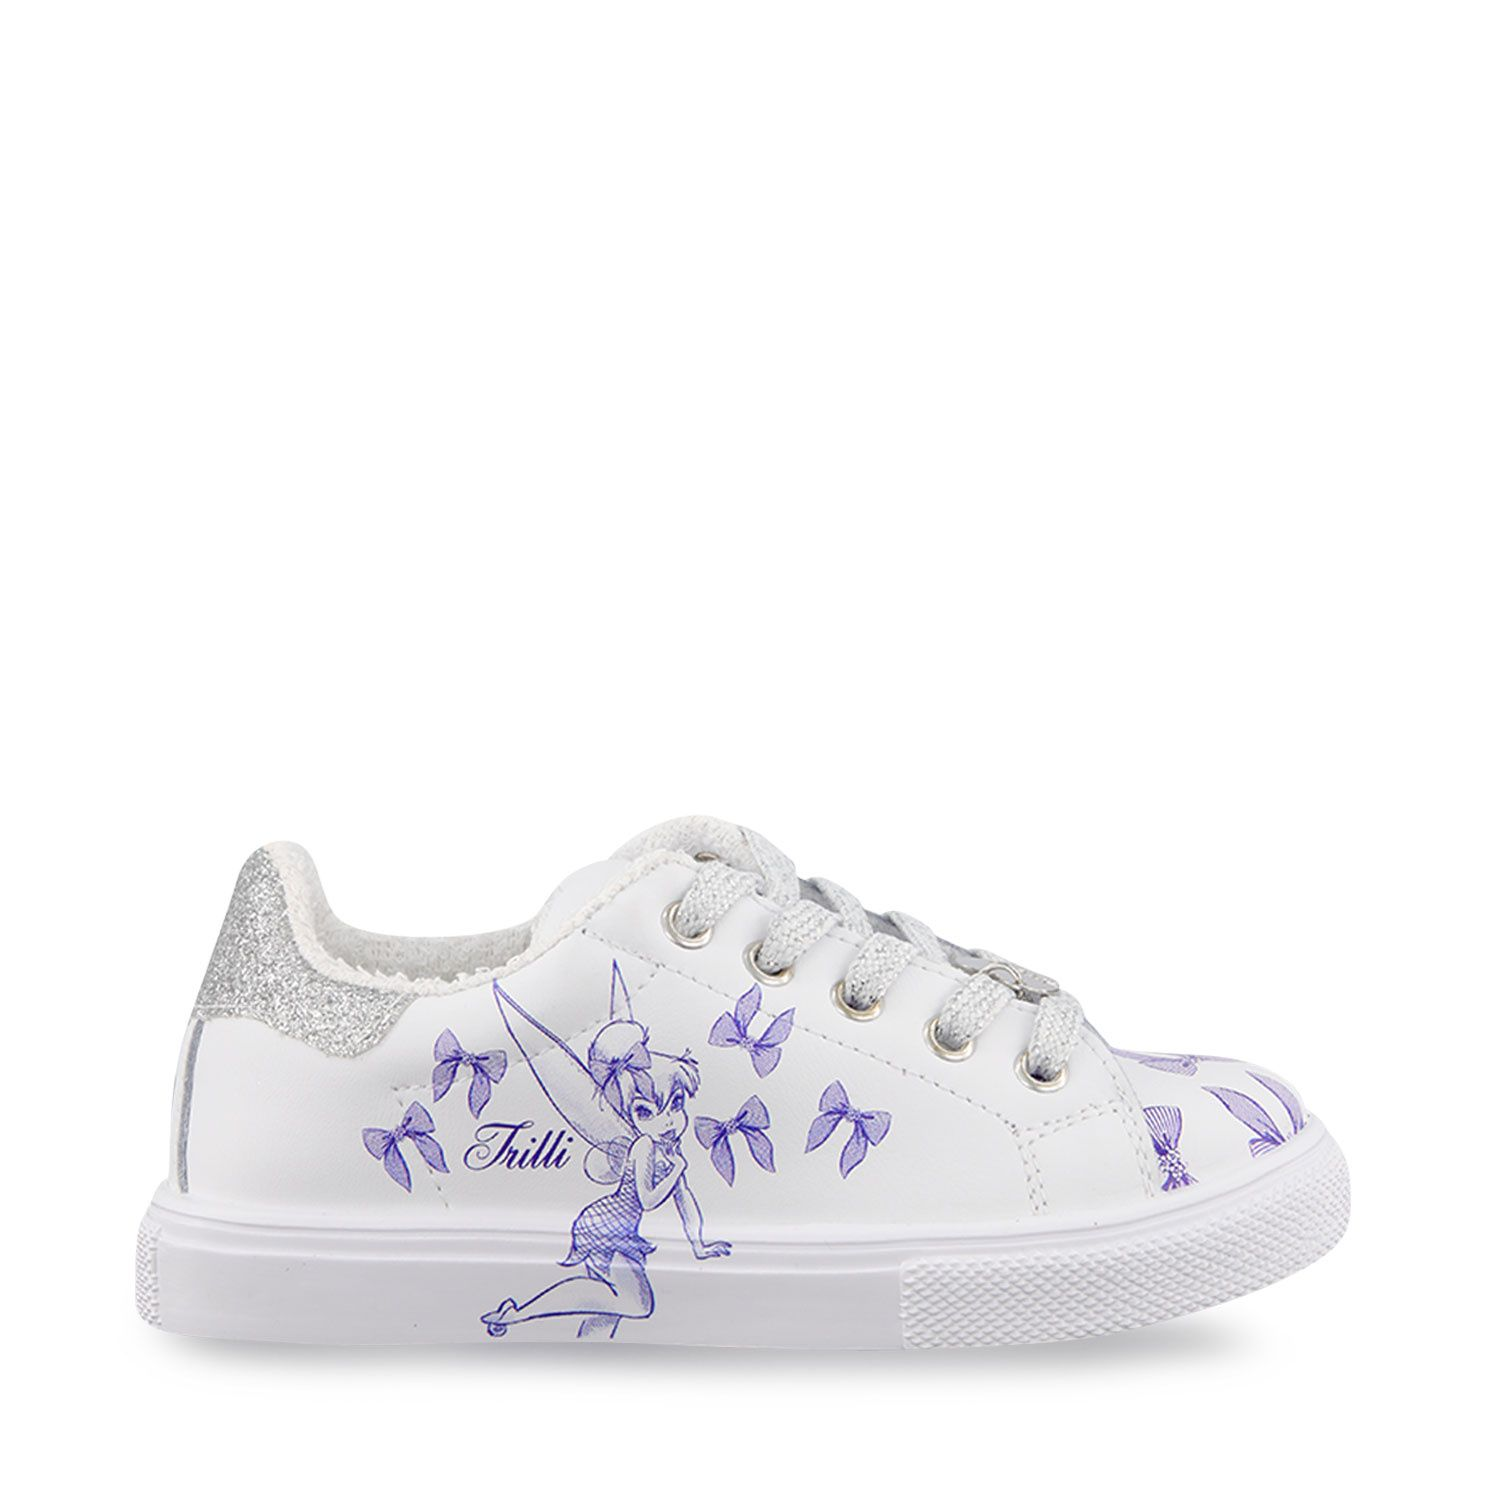 Picture of MonnaLisa 8C7024 kids sneakers white